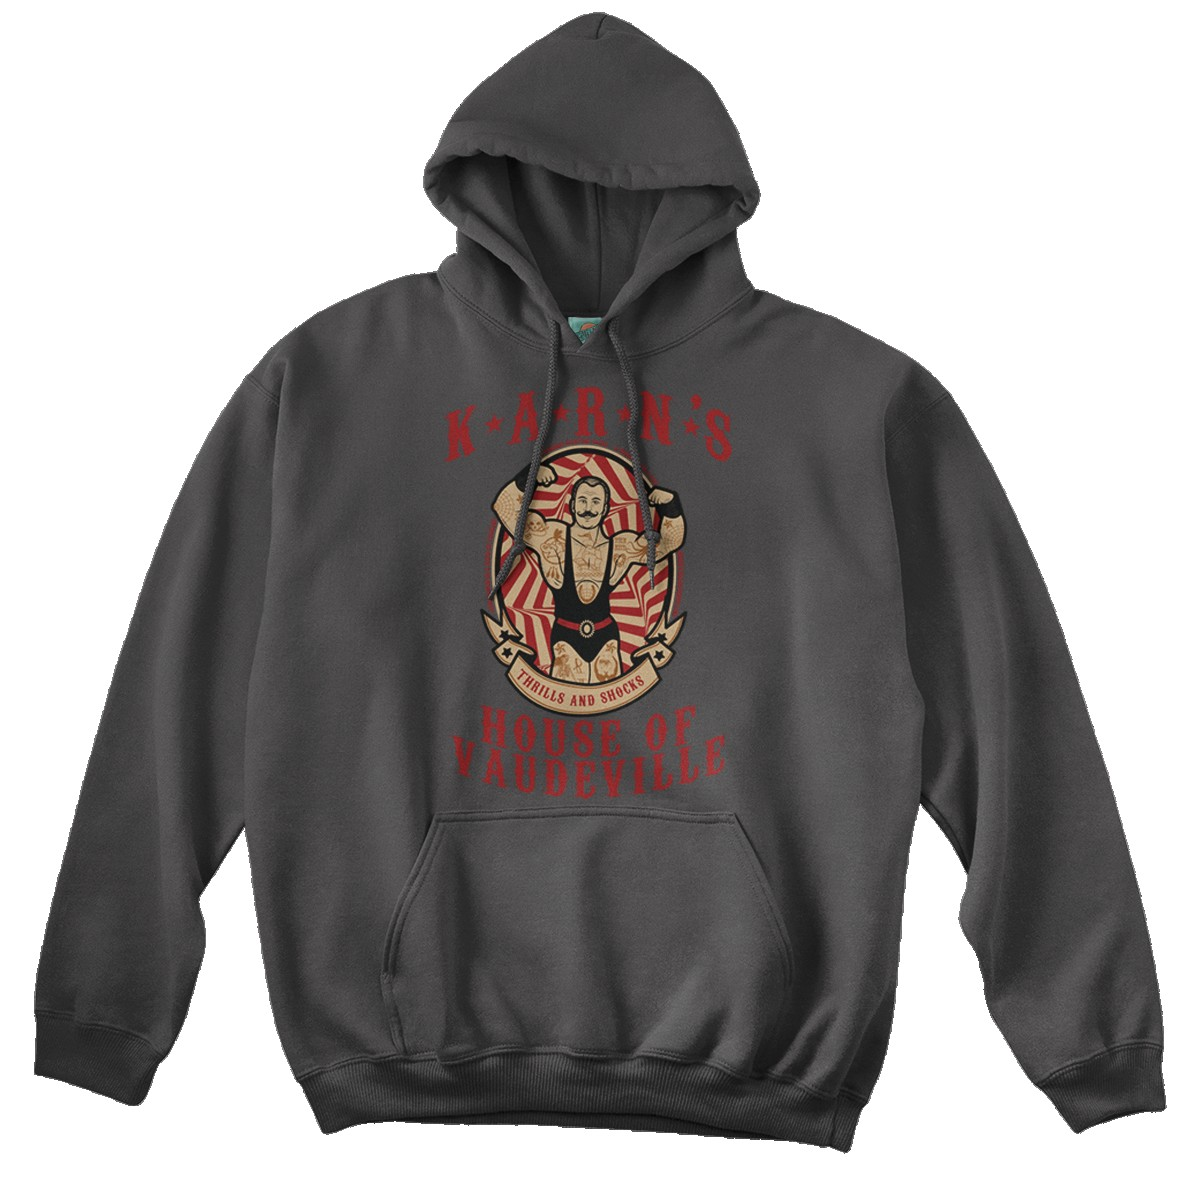 EMERSON-LAKE-AND-PALMER-inspired-Karn-Evil-9-ELP-Hoodie